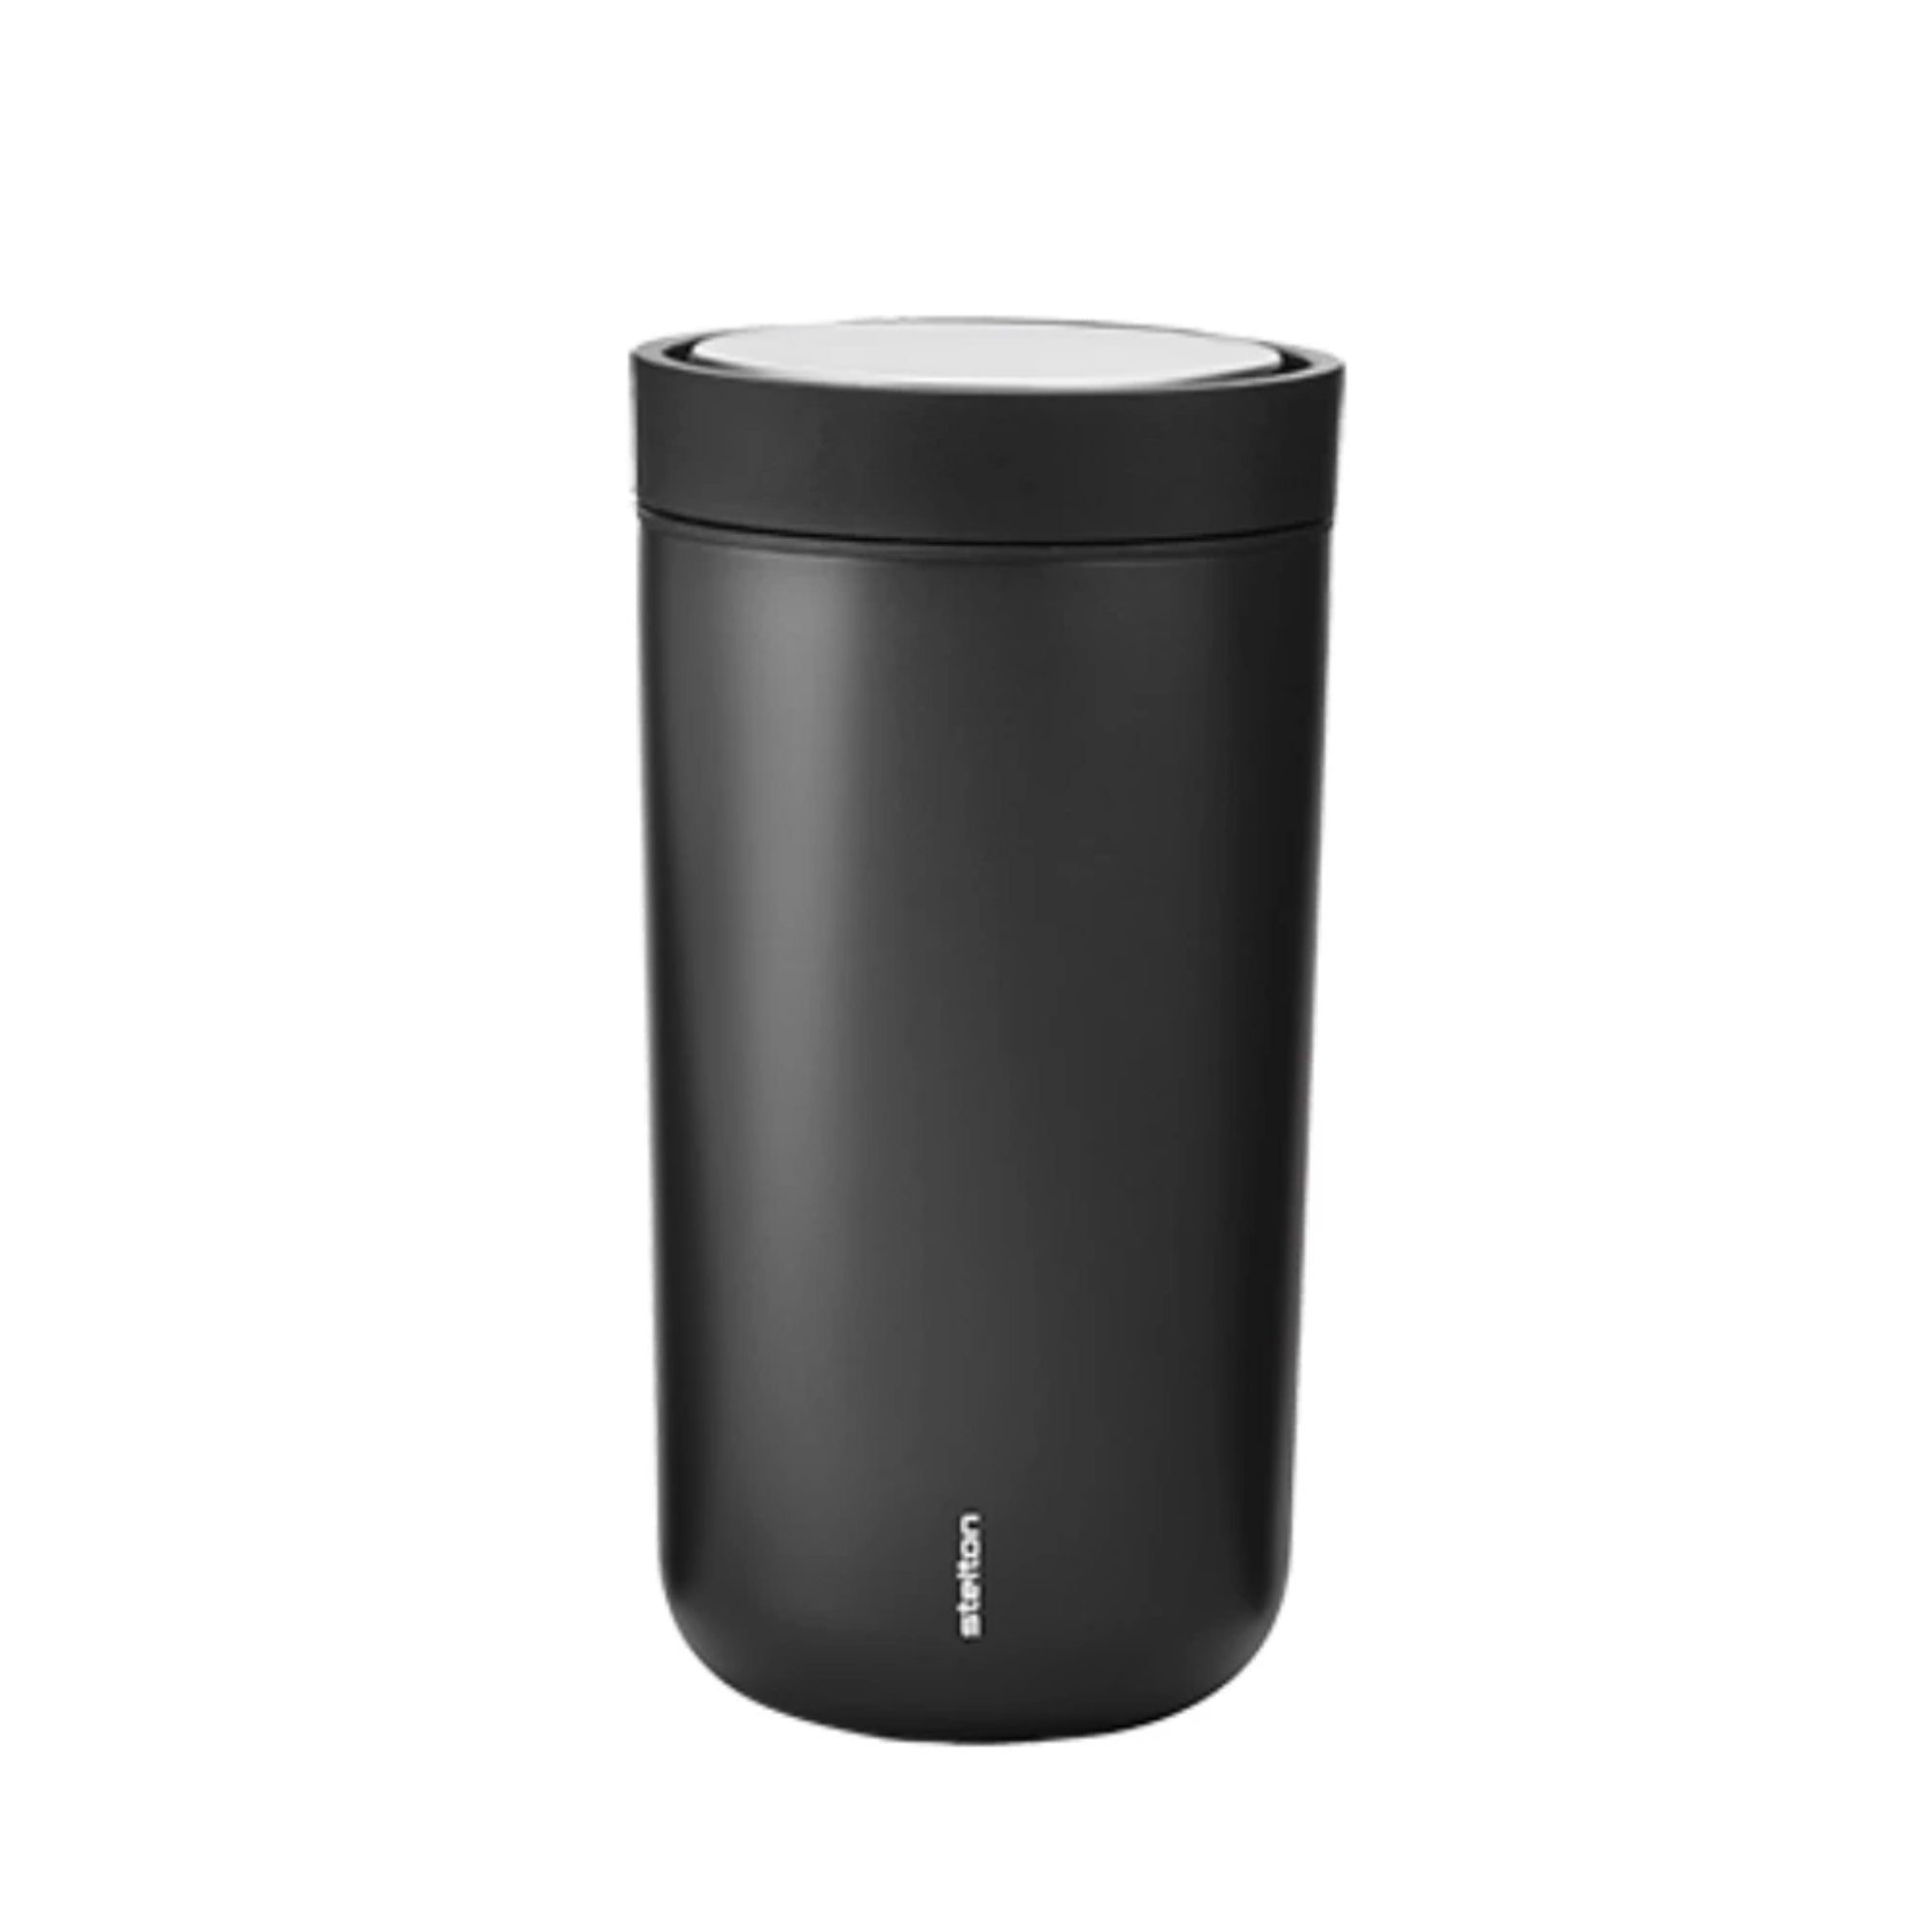 Stelton To Go Click Mug 200ml , Black